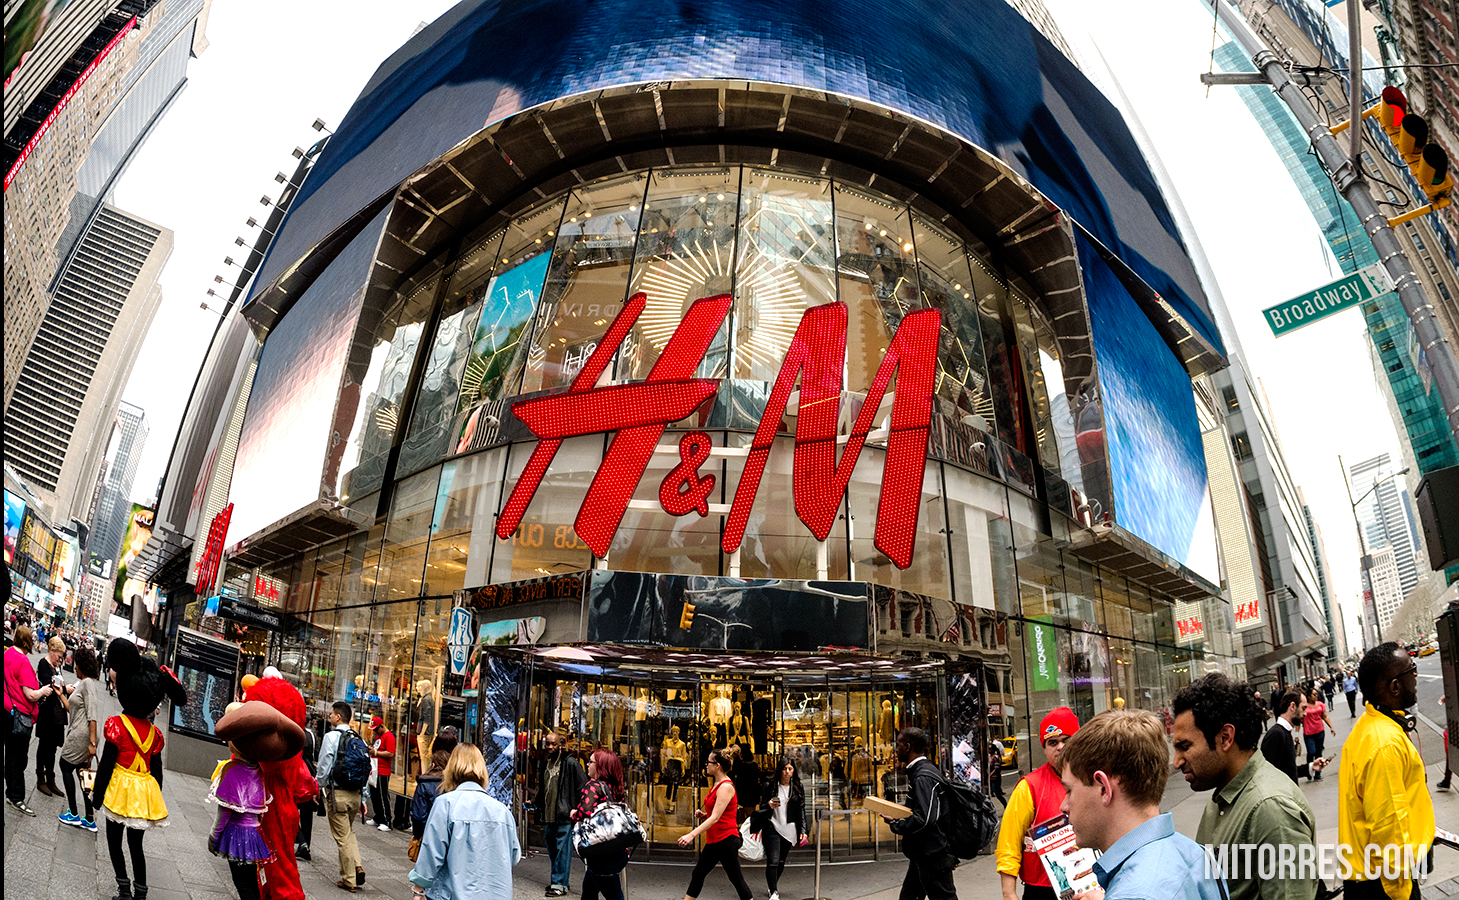 H&M Store in New York City on Broadway. Photo: Marlon I. Torres